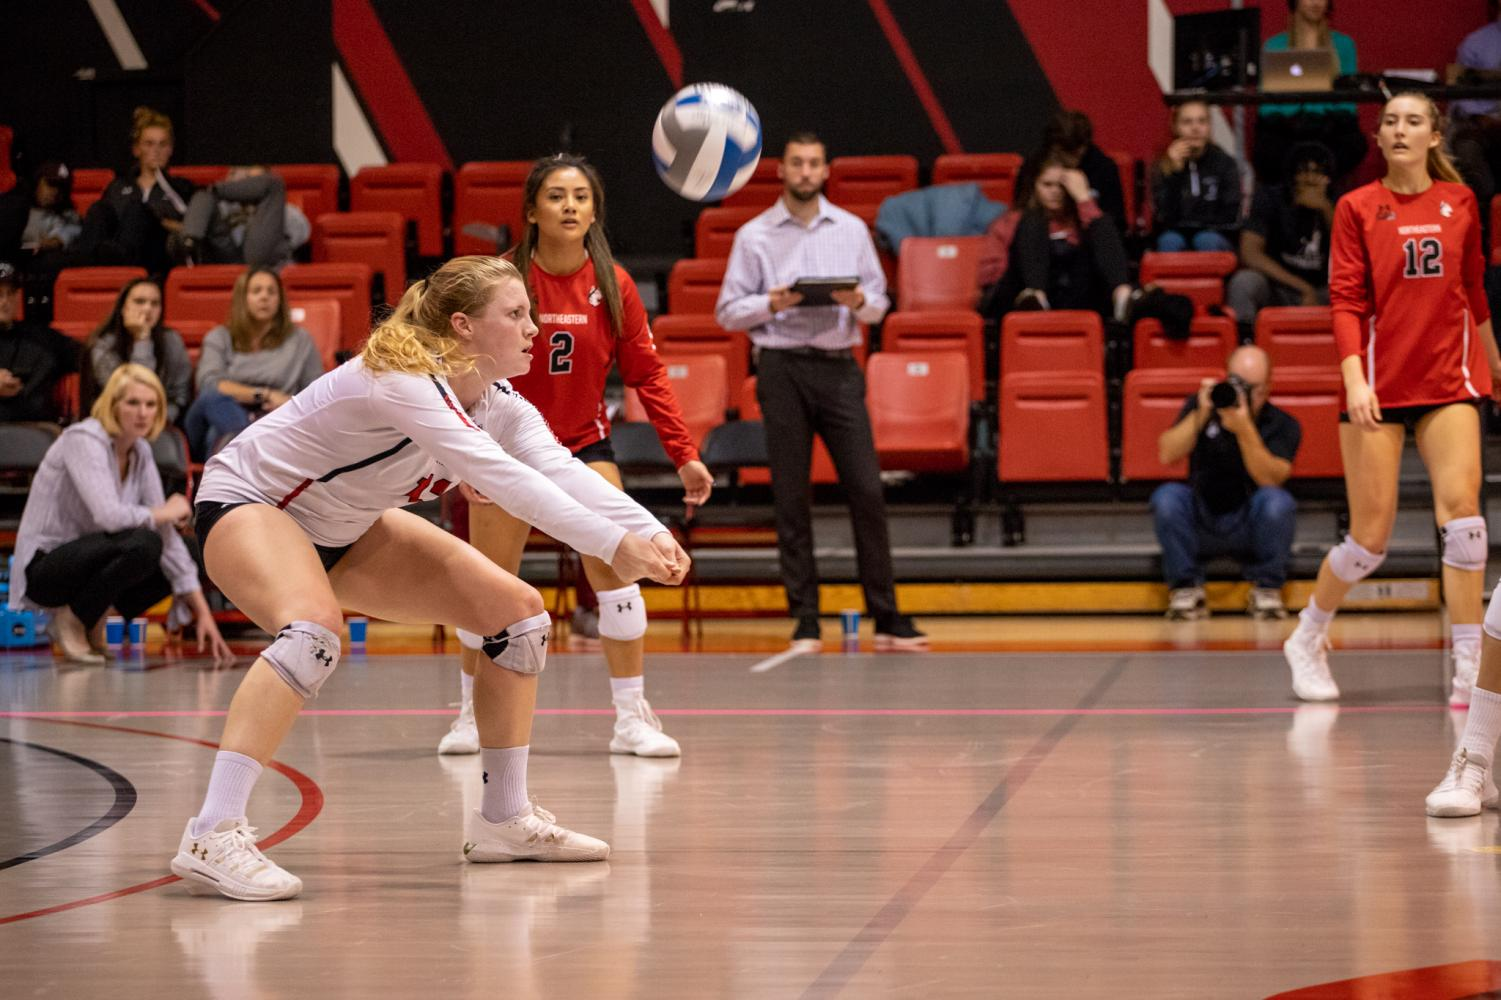 Senior defensive specialist Clare Lund goes for a dig in a game earlier this season versus Elon.